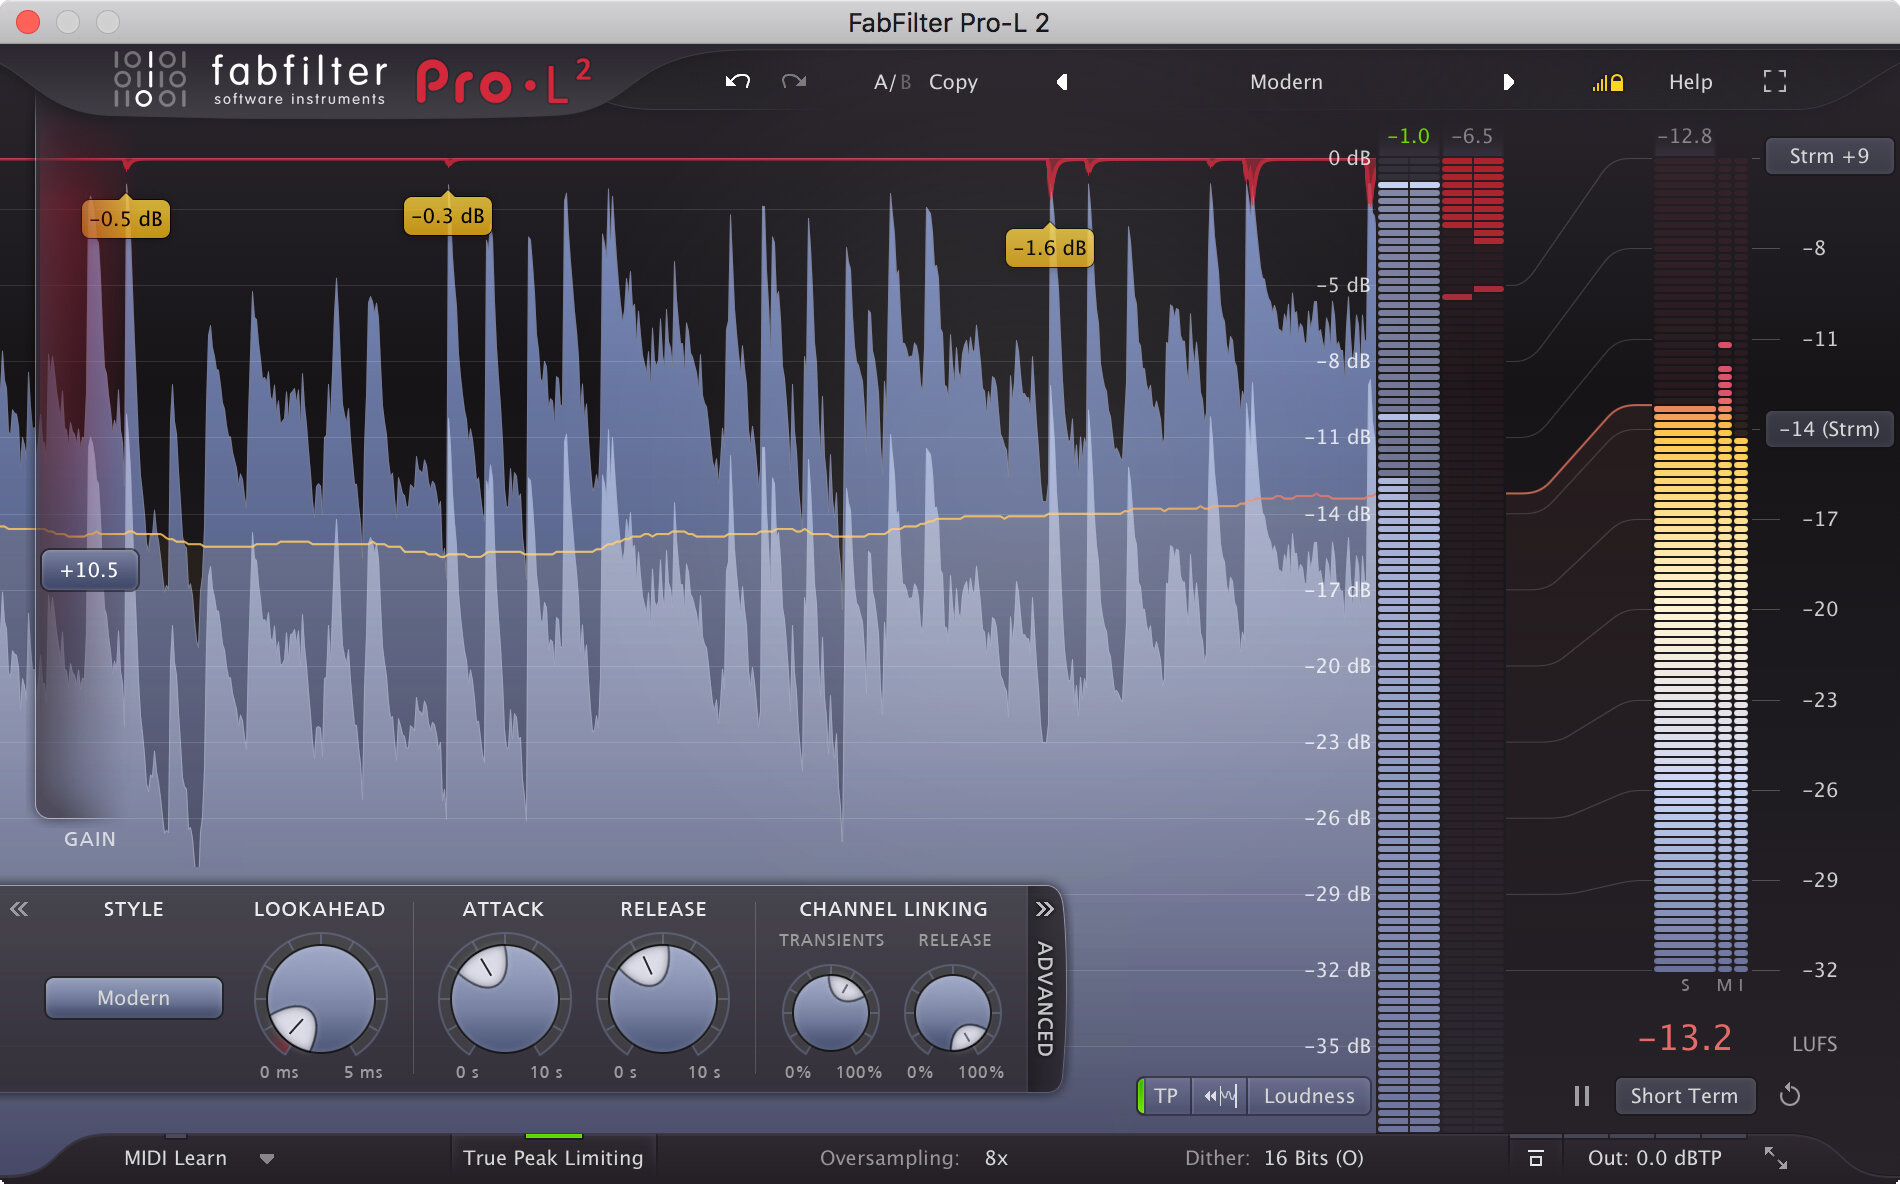 Fabfilter Pro-L 2 - I want my final brickwall peak limiter to be a lot of things, but audible is not one of them. The Fabfilter Pro-L 2 is the pinnacle of limiter technology. It is capable of huge amounts of peak reduction (if necessary) with very few artefacts. It never ceases to amaze me!